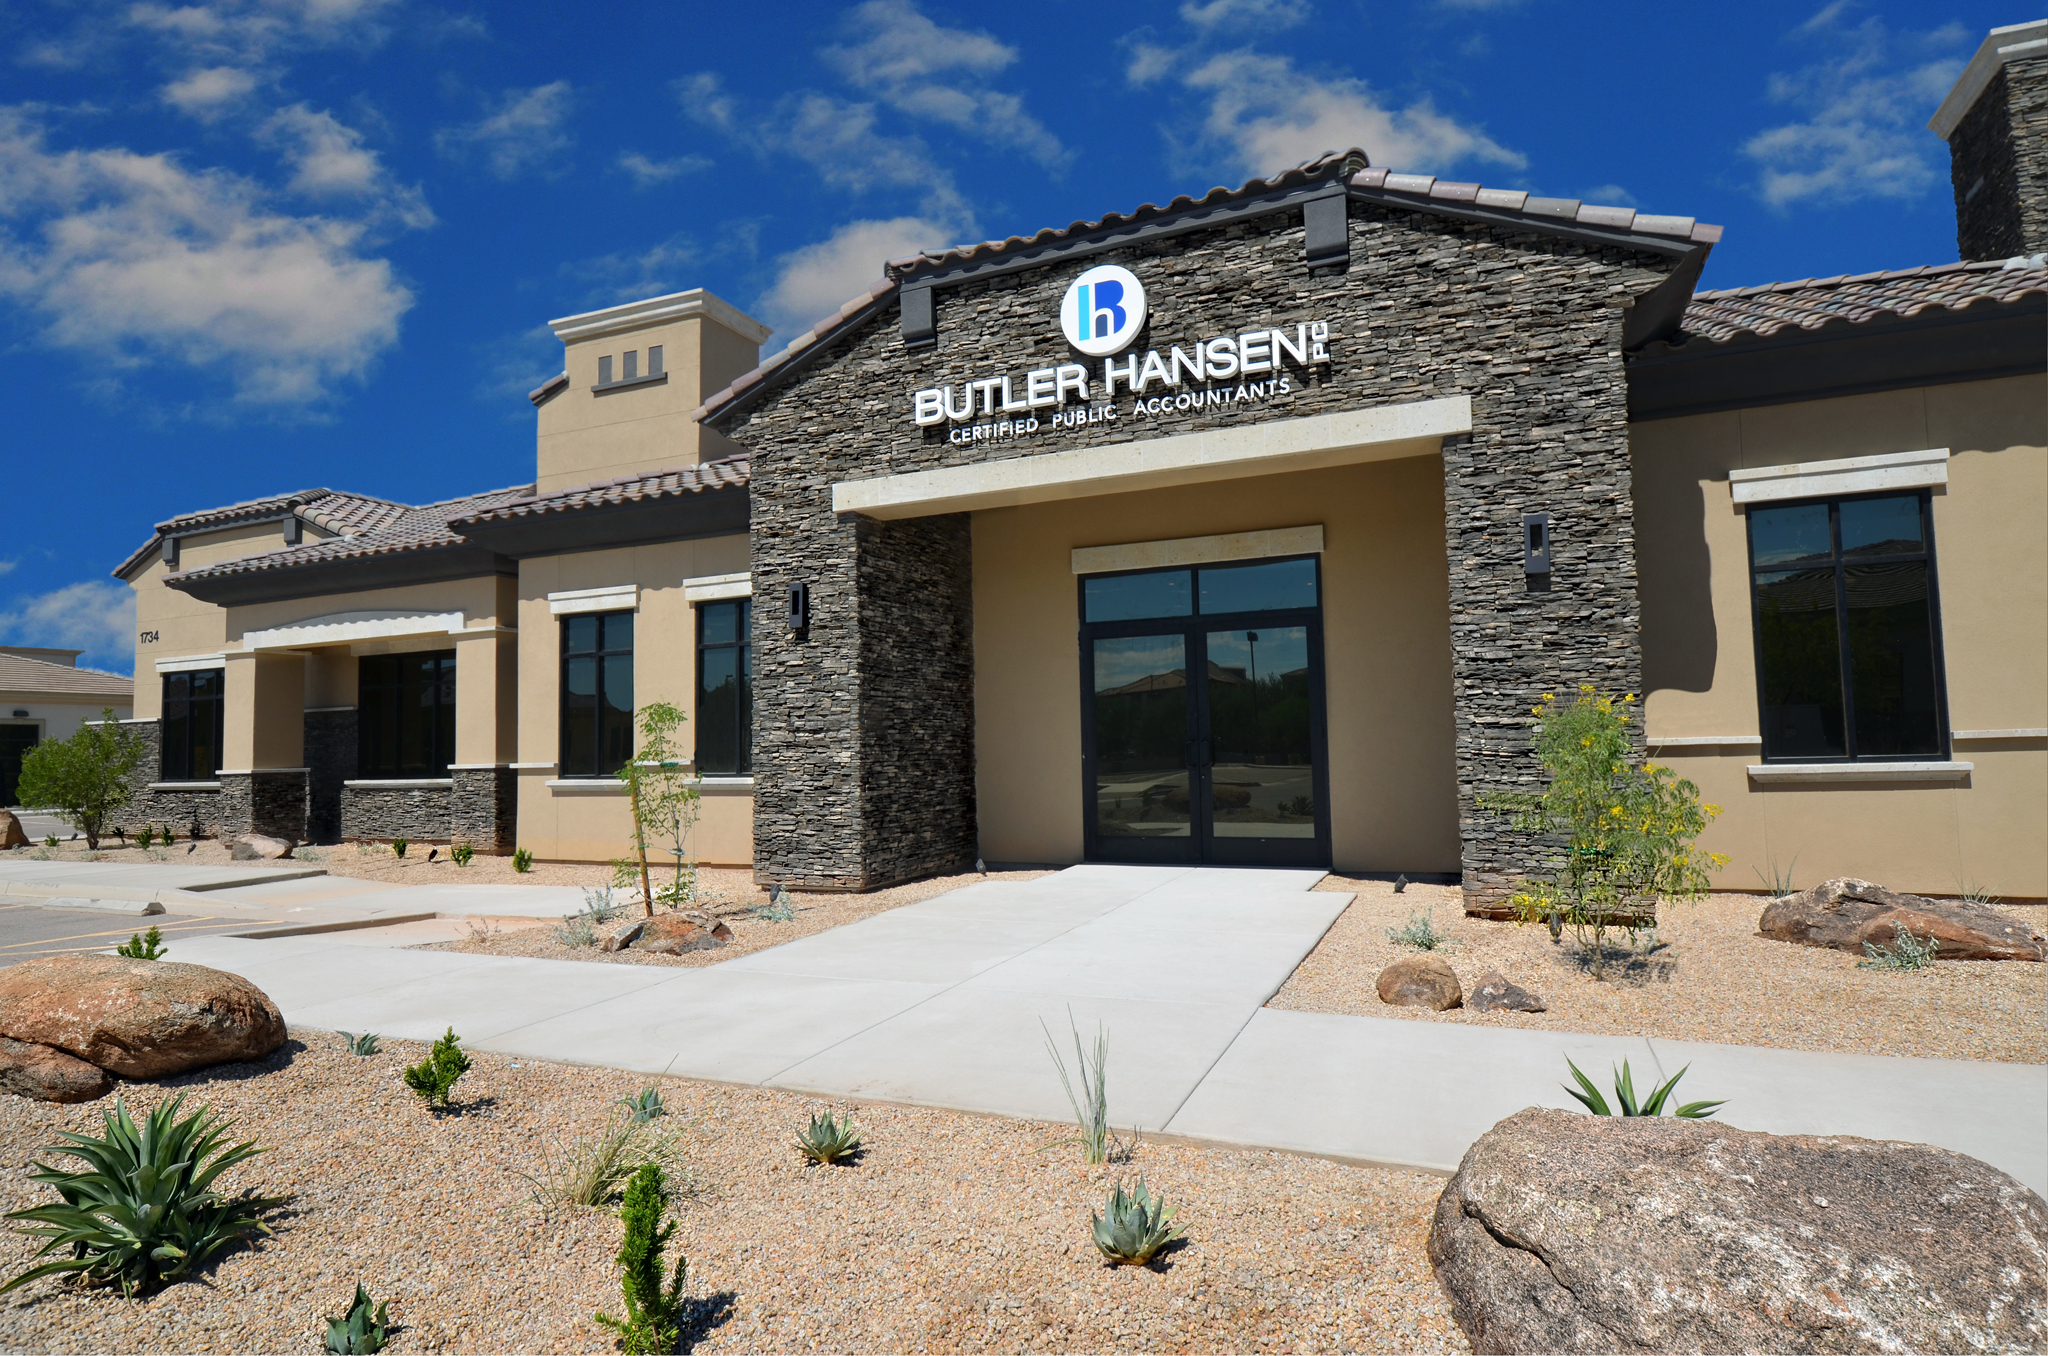 Financial company office building contractors in Gilbert, AZ